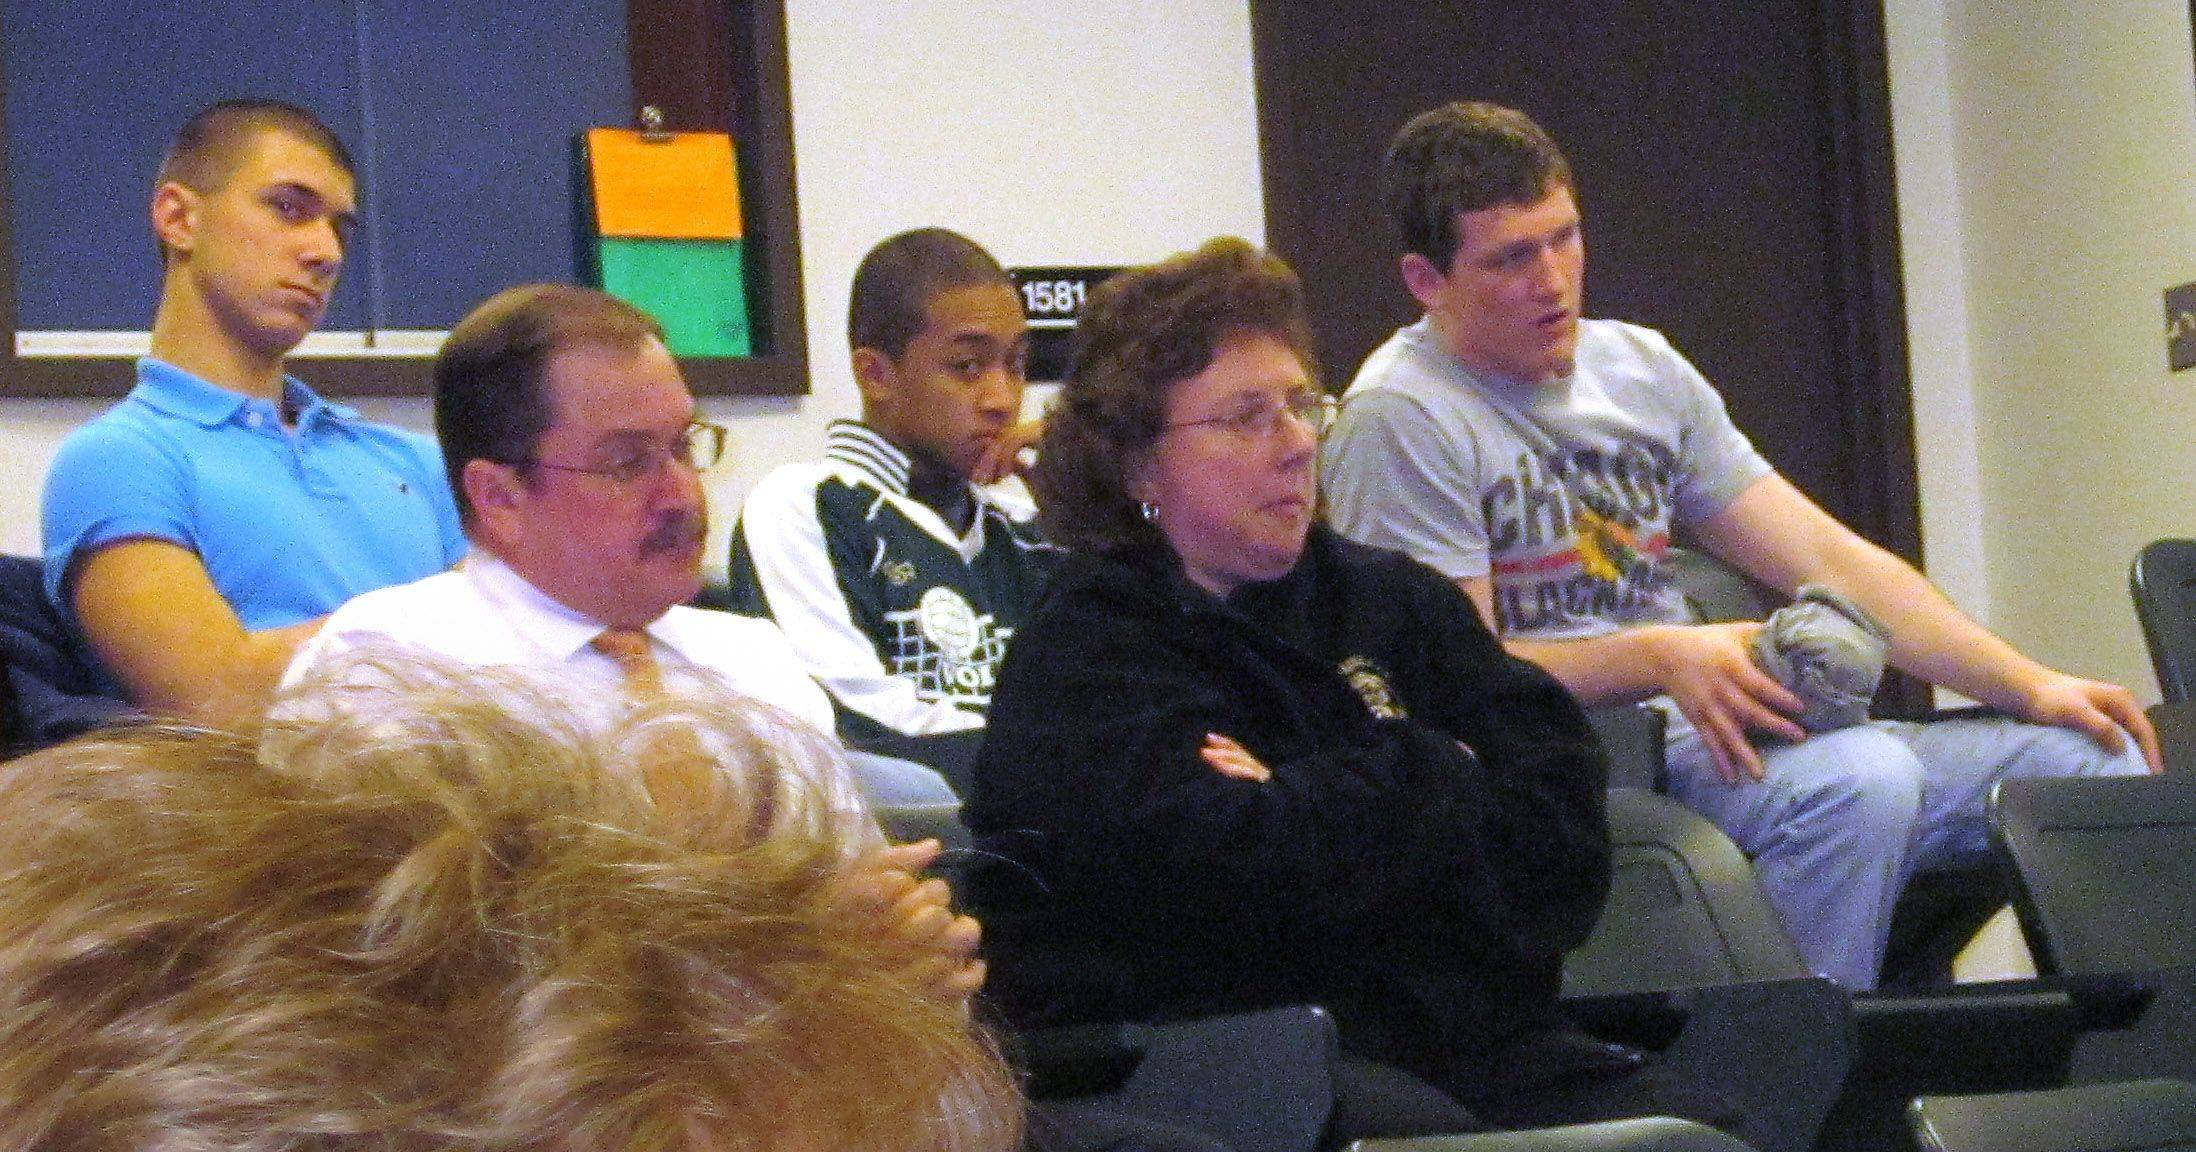 Richard Downes, front left, and his wife Debbie Downes, were among roughly 25 spectators who received no information after Grayslake High School District 127 board members voted on personnel matters March 10. The couple was concerned about action against some wrestling coaches.